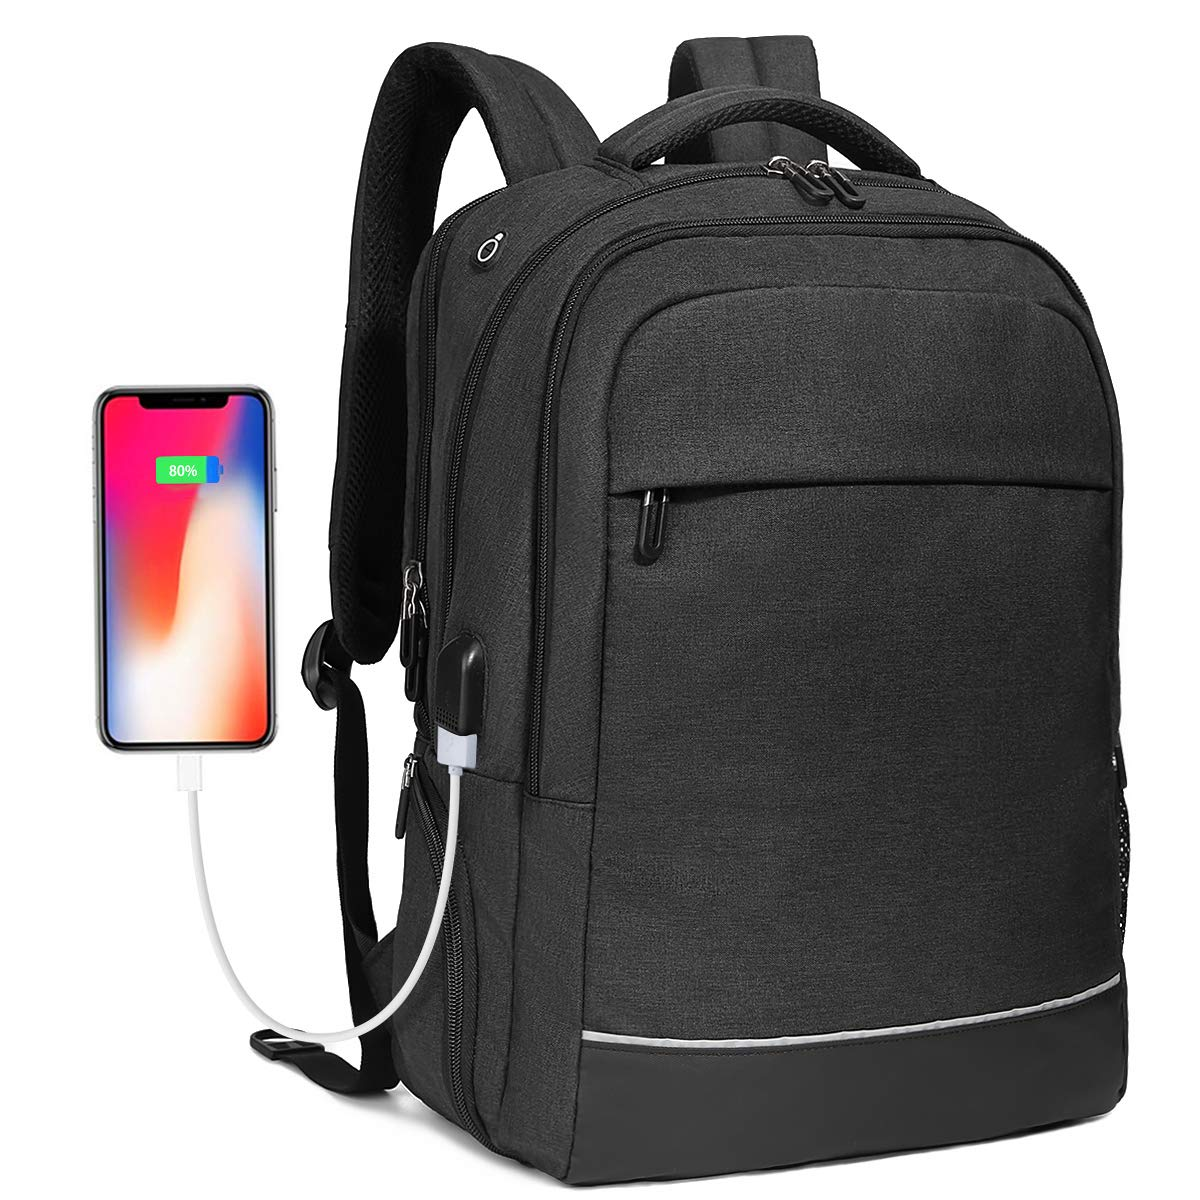 Travel Business Laptop Backpack up to 17.3 inch, Water Resistant College School Computer Bag for Women & Men and Students, Slim Work Backpack for Laptops & Notebook with USB Charging Port (Black)